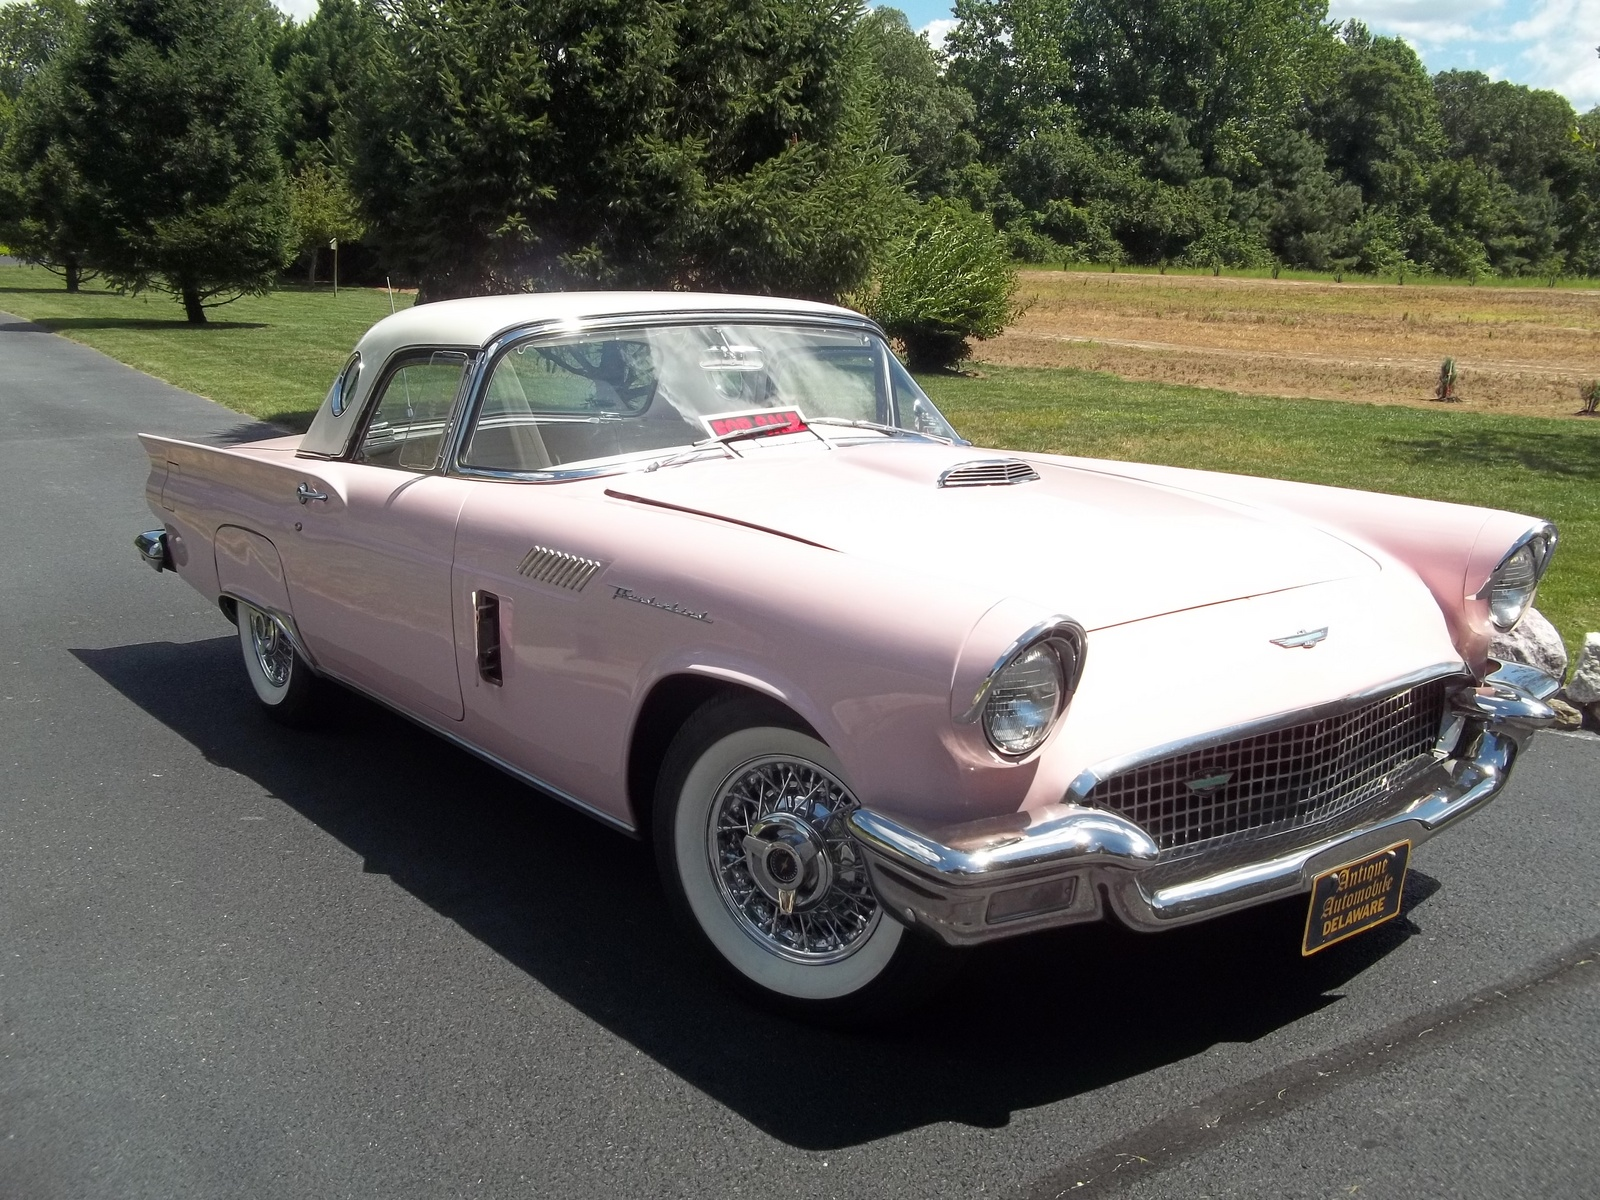 1966 Ford Thunderbird Pictures C4620 pi36346504 together with Album 72157630262912954 additionally 1959 Ford Anglia Overview C15220 in addition Voiture Miniature F1 besides . on 1955 ford victoria